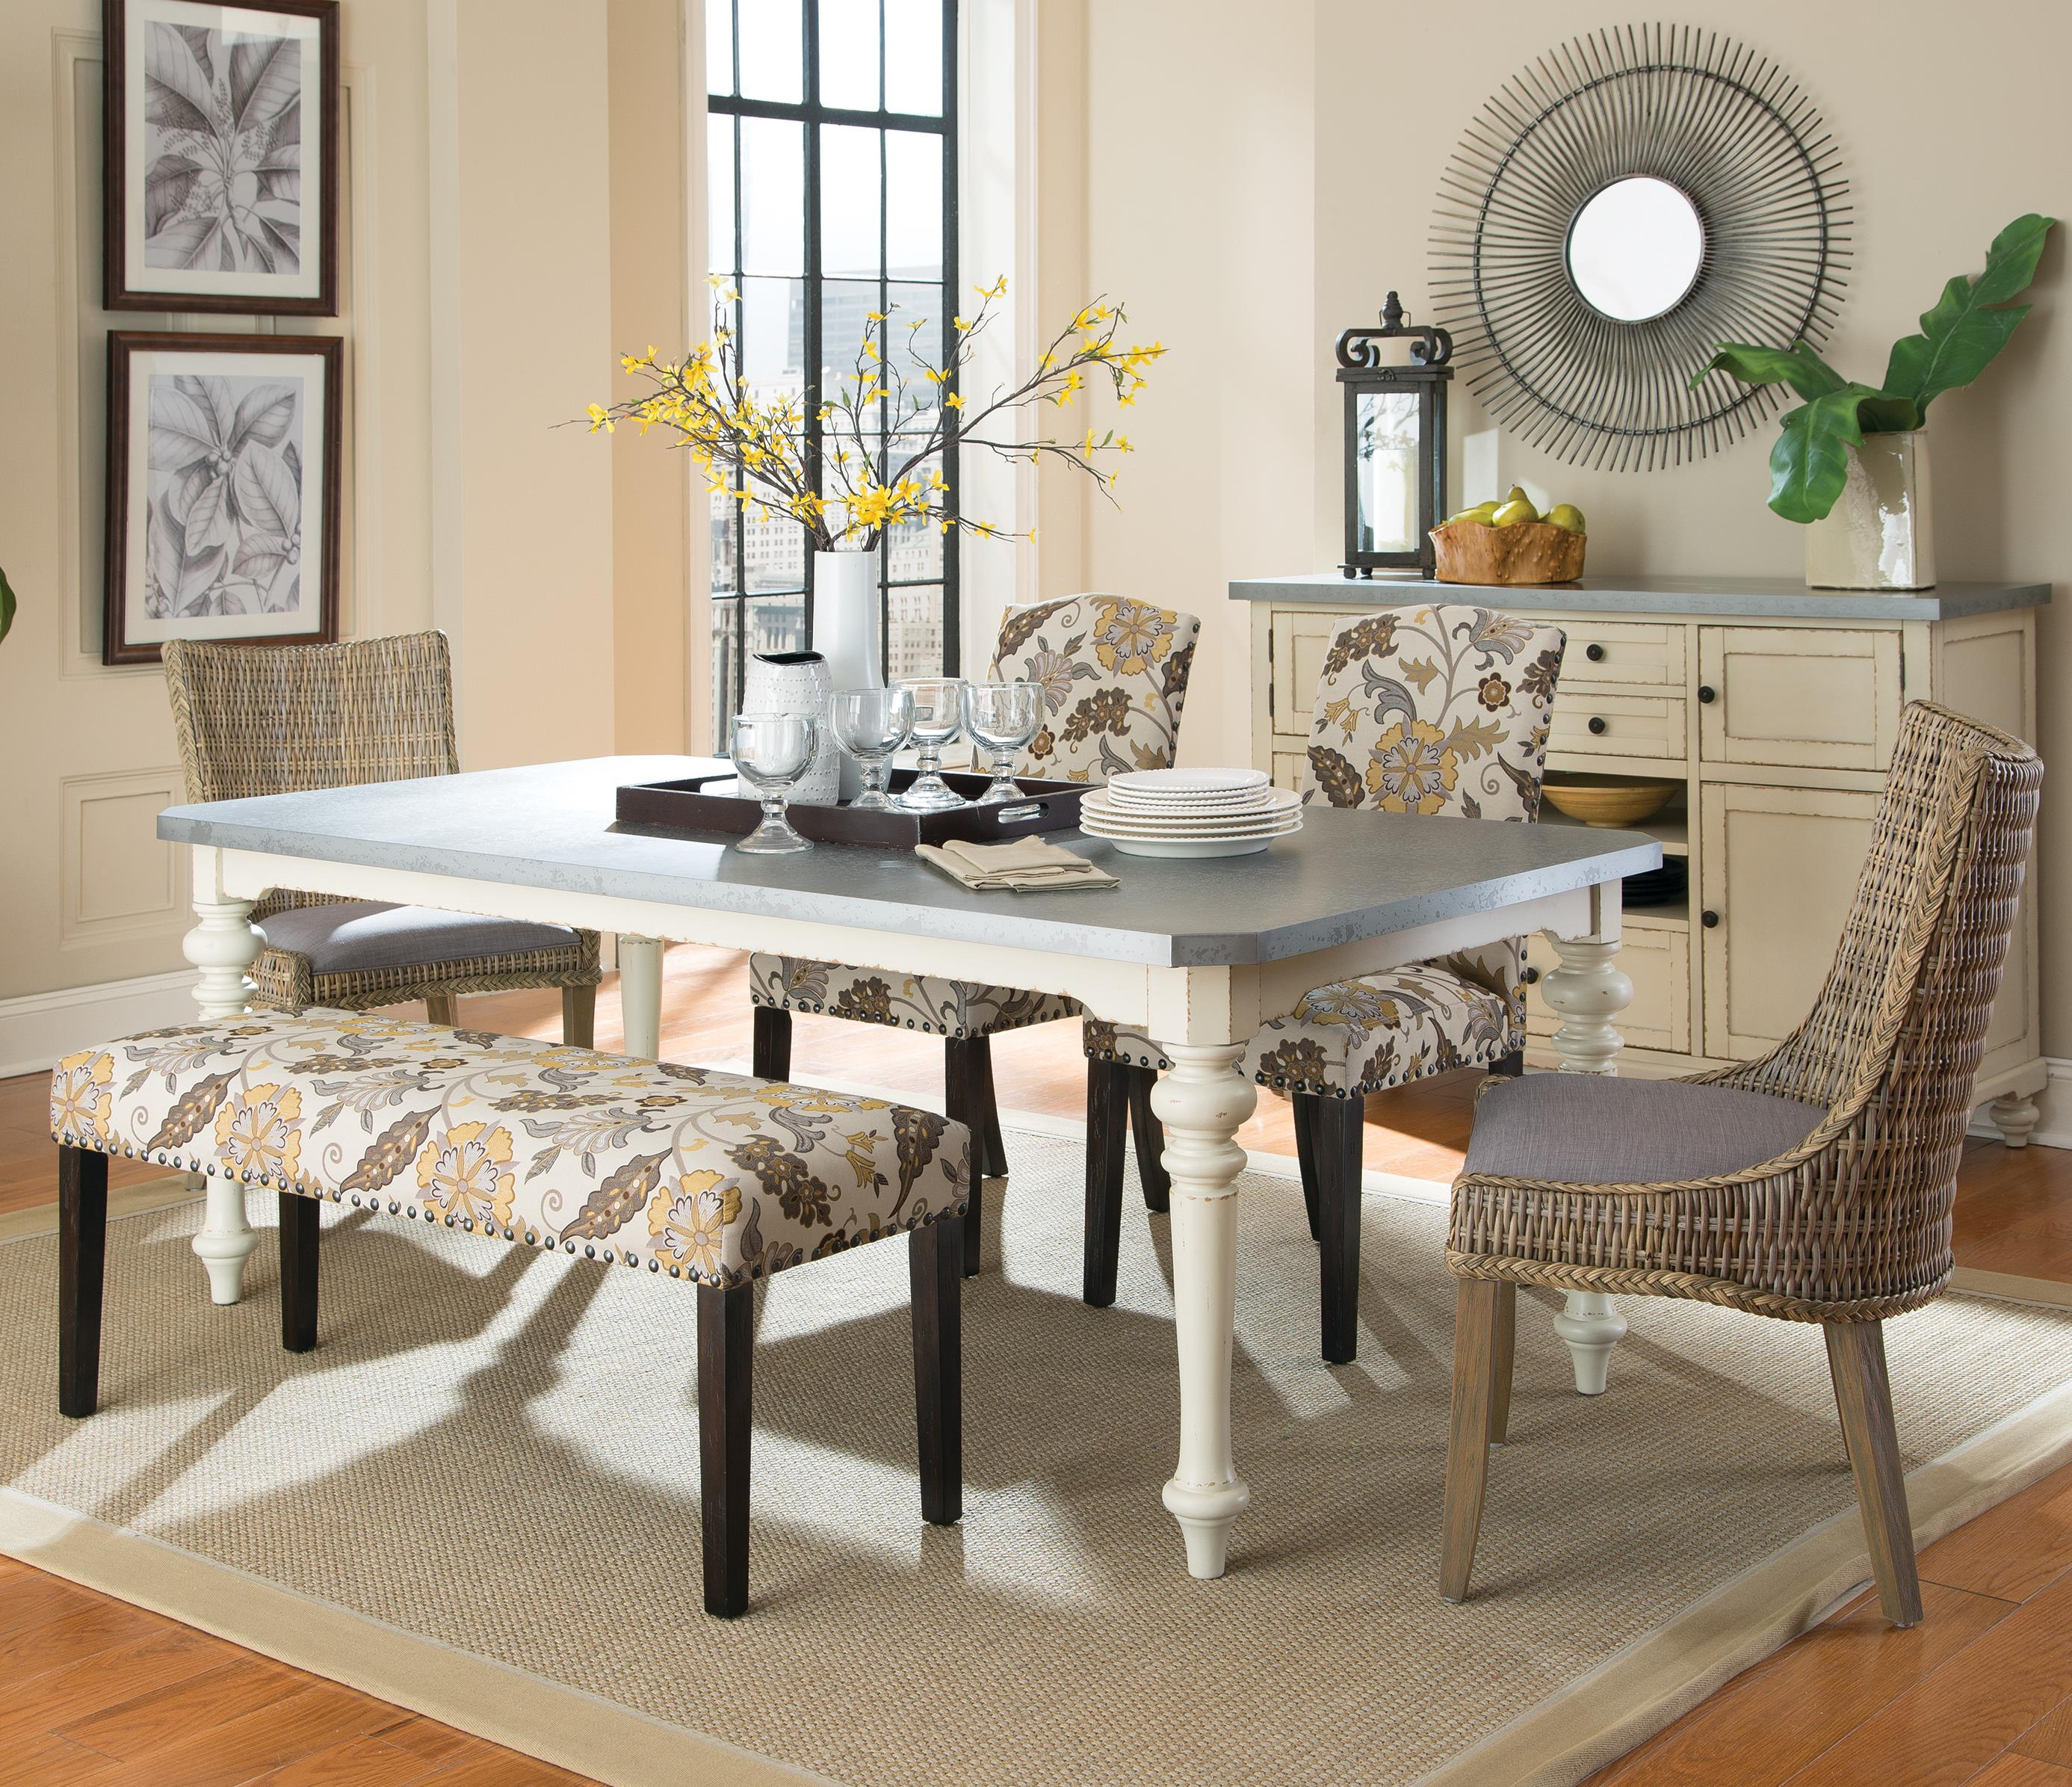 Coaster Matisse 6 Pc Dining Set w/ Bench - Item Number: 106111+2X101075+2X100562+100563